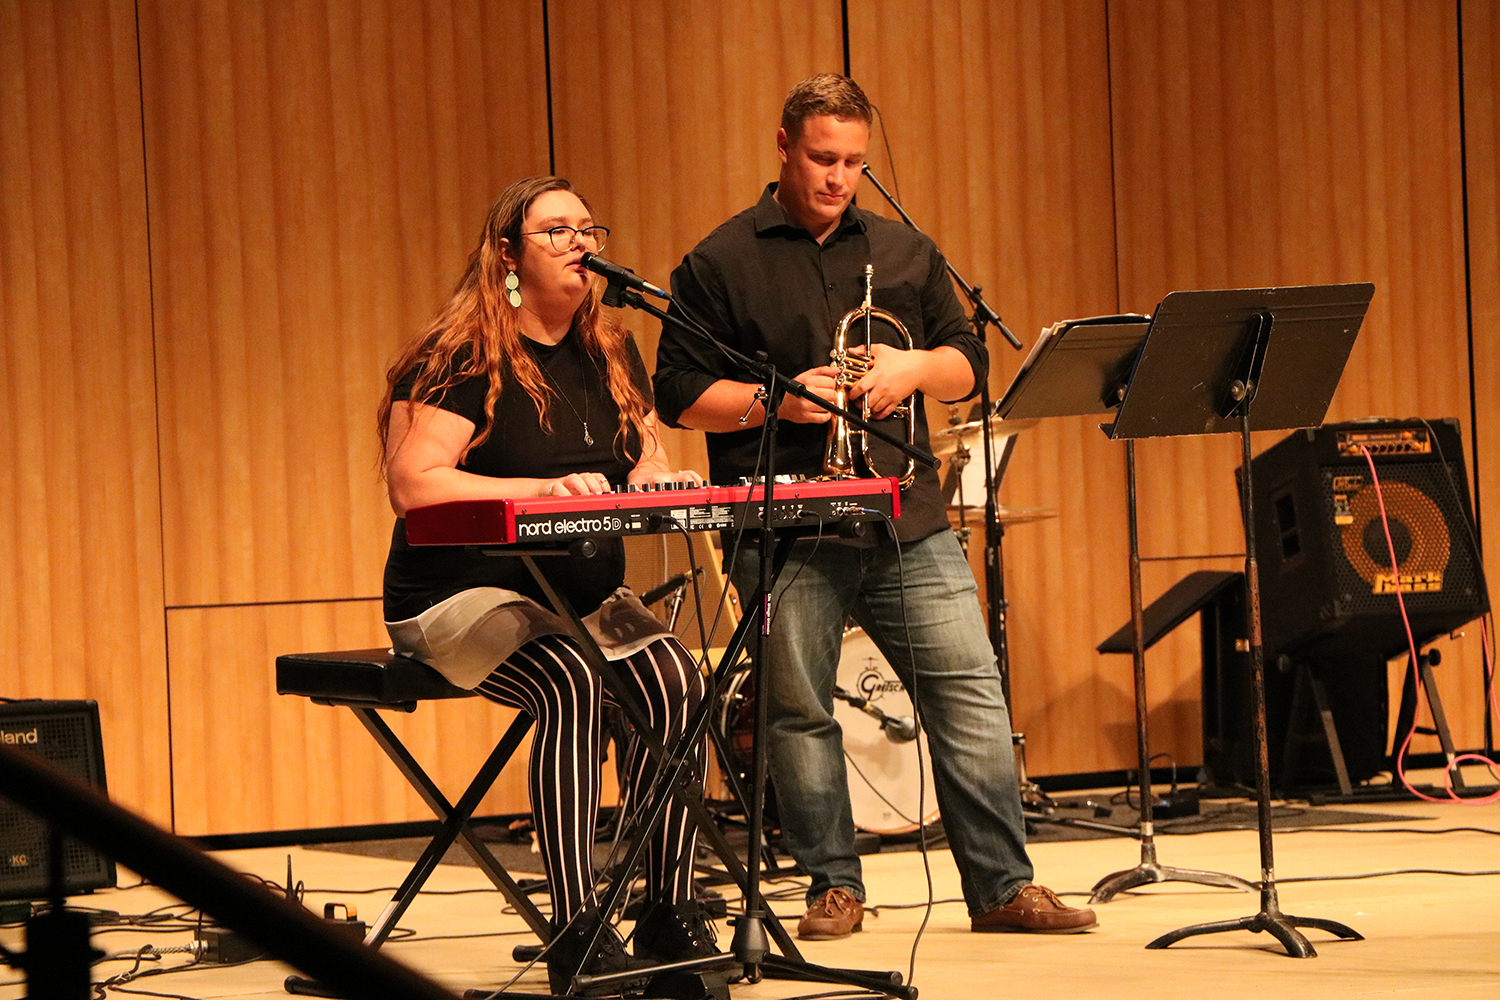 Izzy Foster (left) and Tony Stone (right) performing a musical piece during the Panorama Creative Music Summit on Sept. 16 at Bakersfield College.